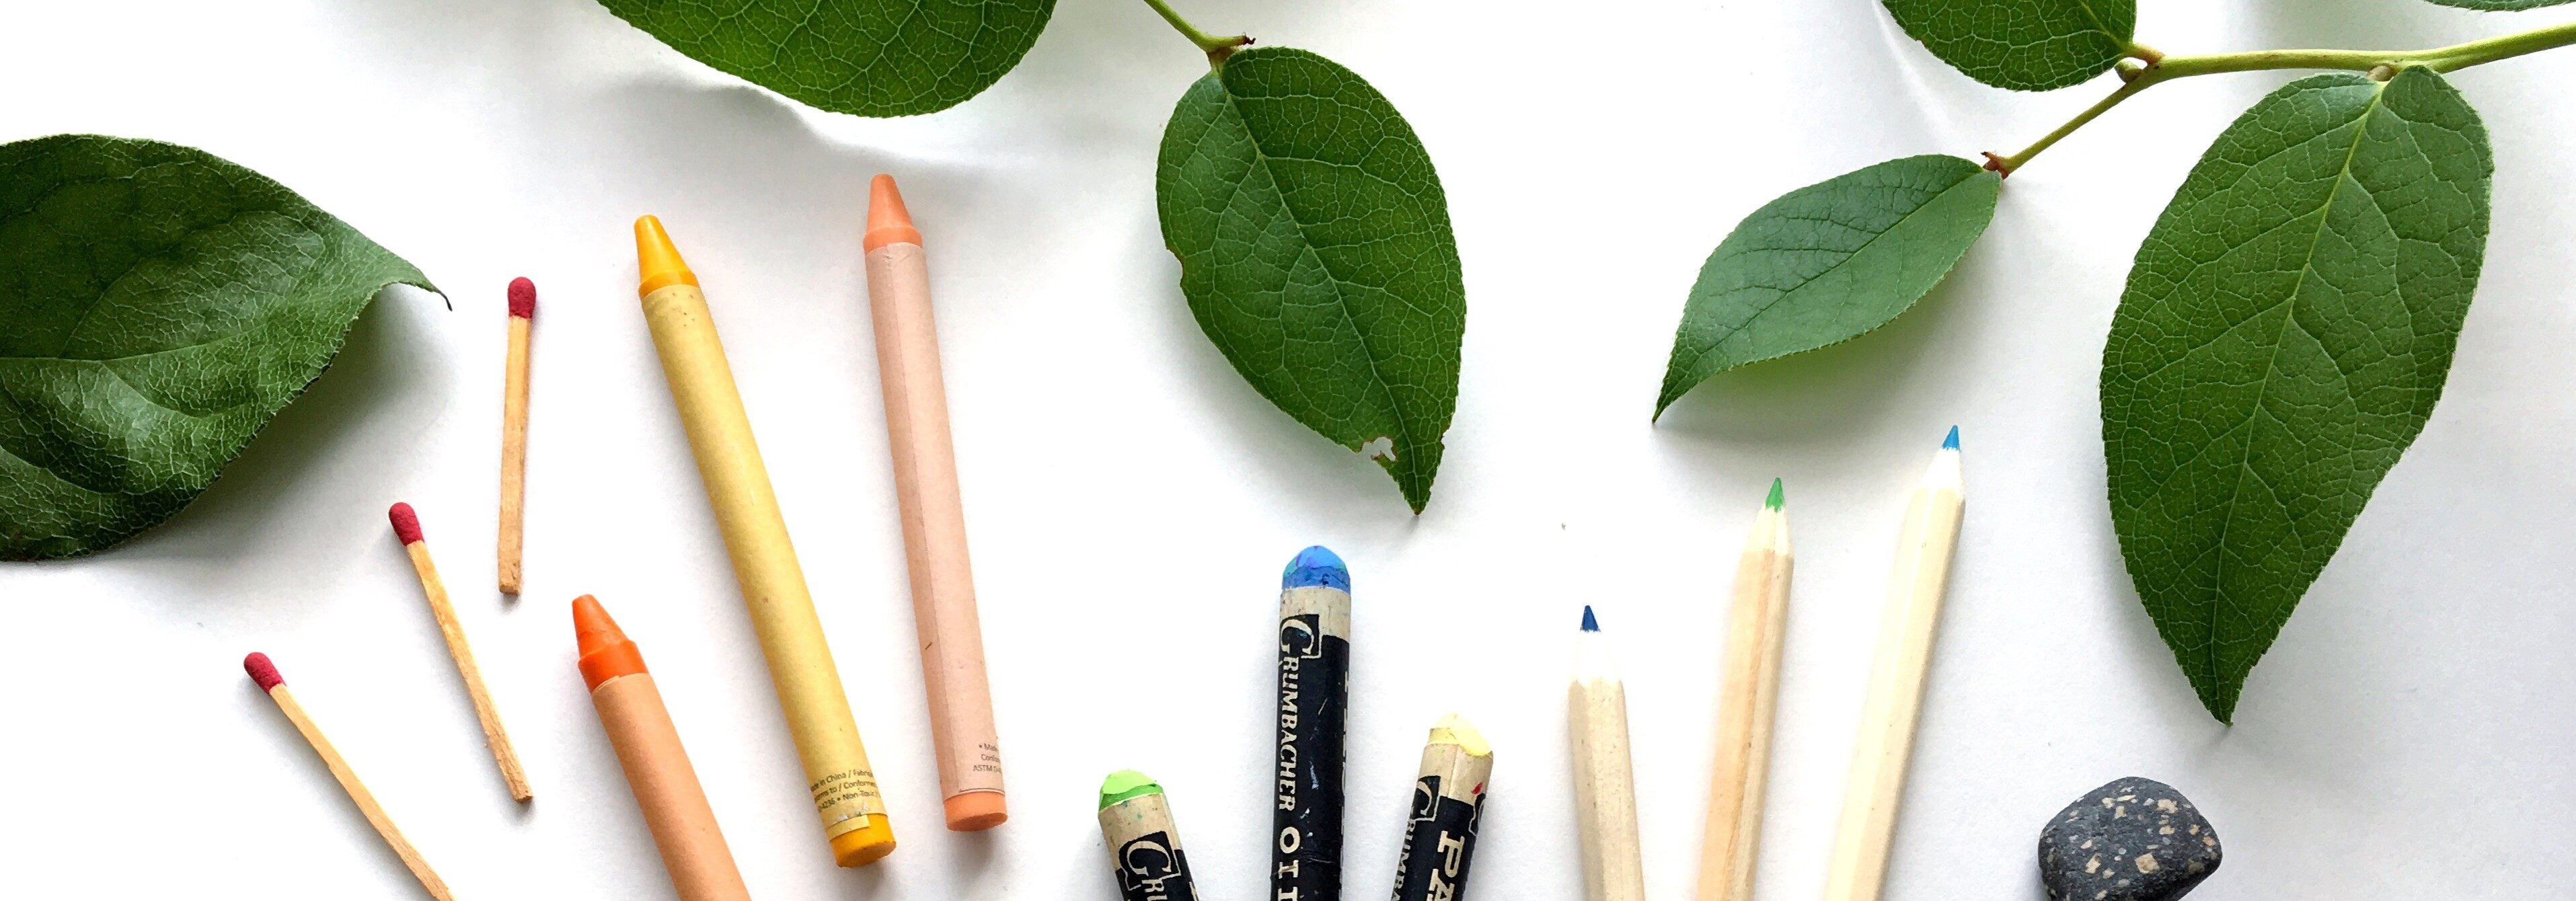 matches, crayons, oil pastels and pencil crayons with green leaves on white background